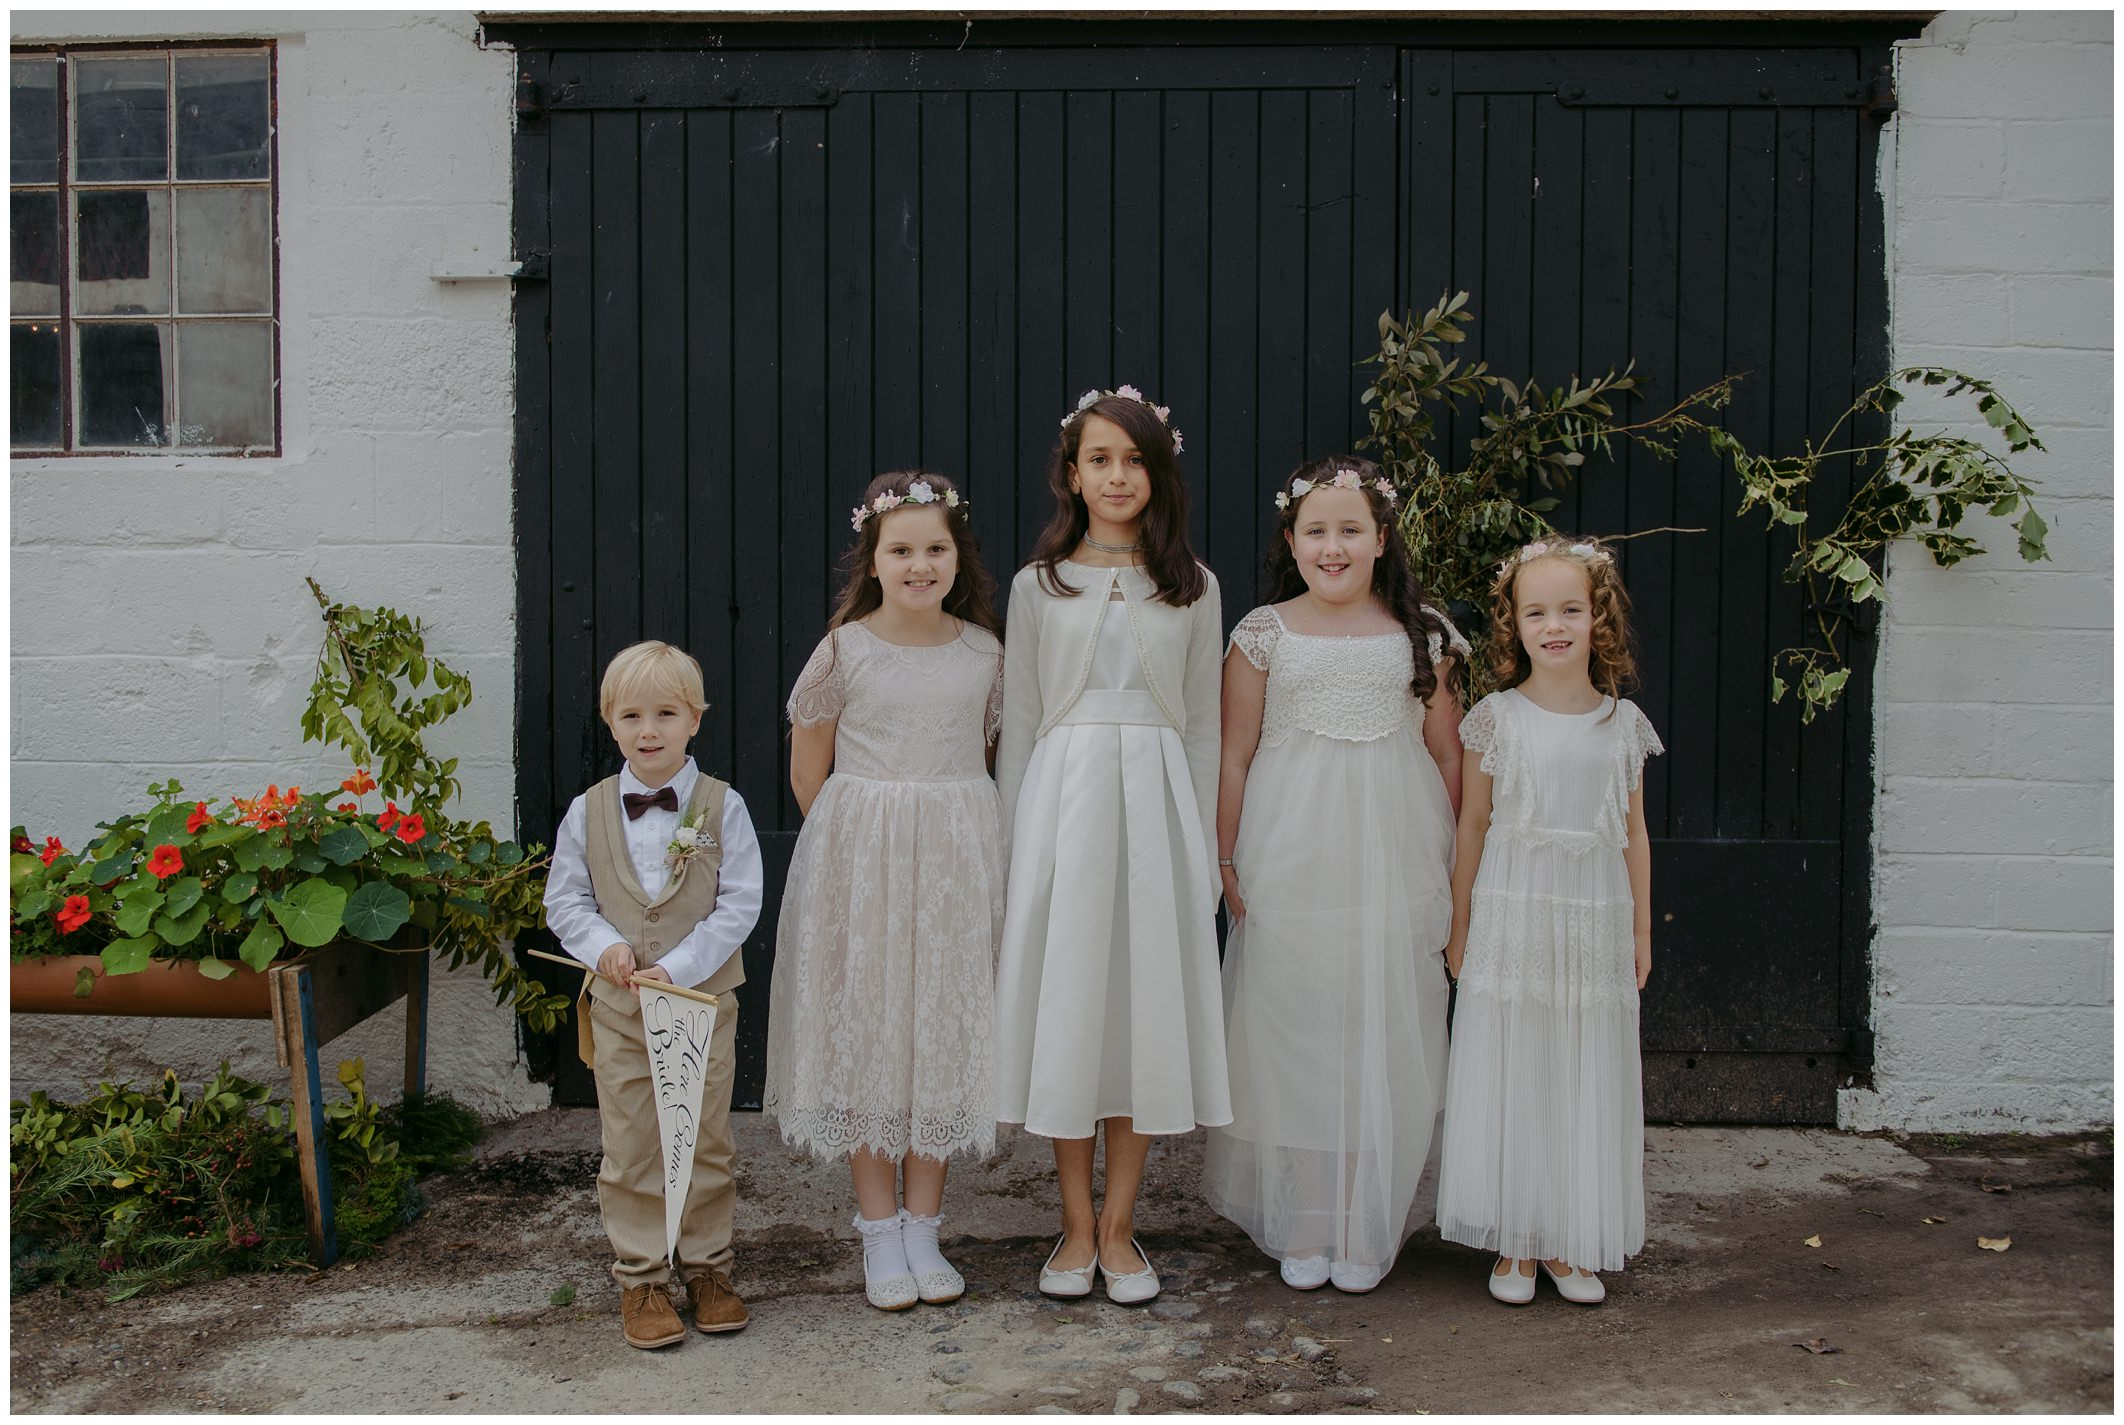 tara_neil_the_mill_alternative_quirky_wedding_jude_browne_photography_0065.jpg